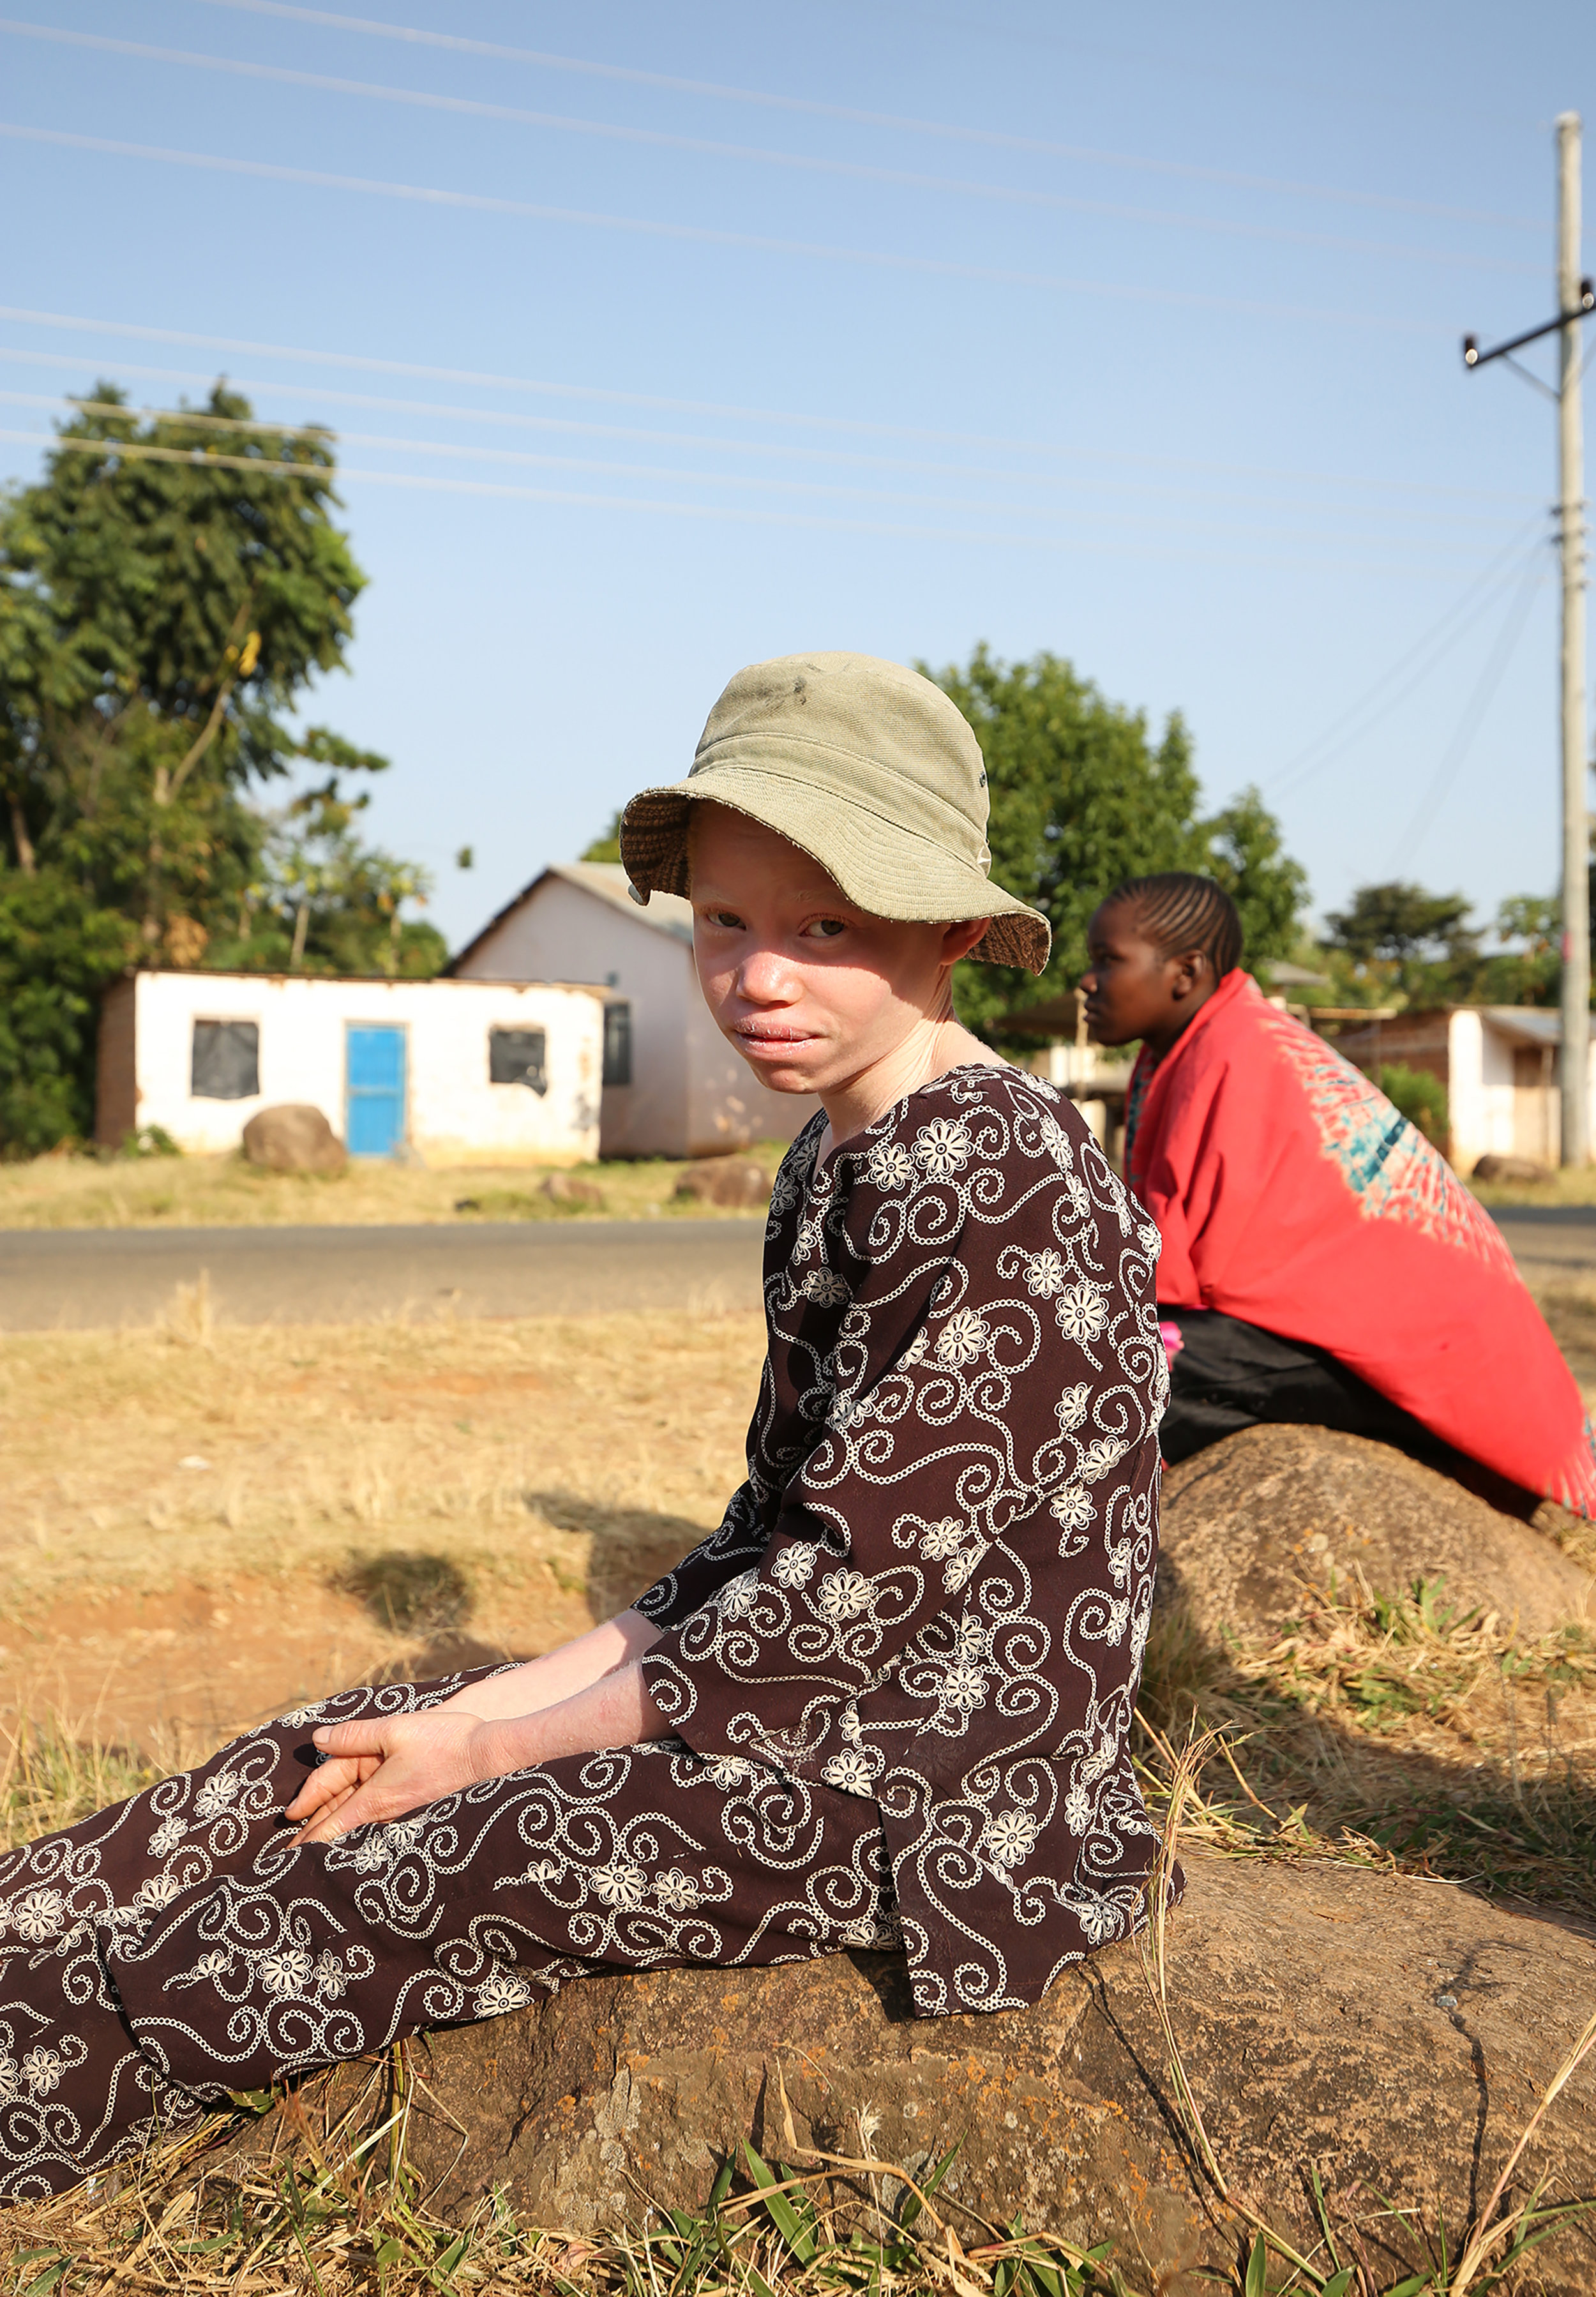 Myths and misconceptions around albinism cause mockery and bullying.